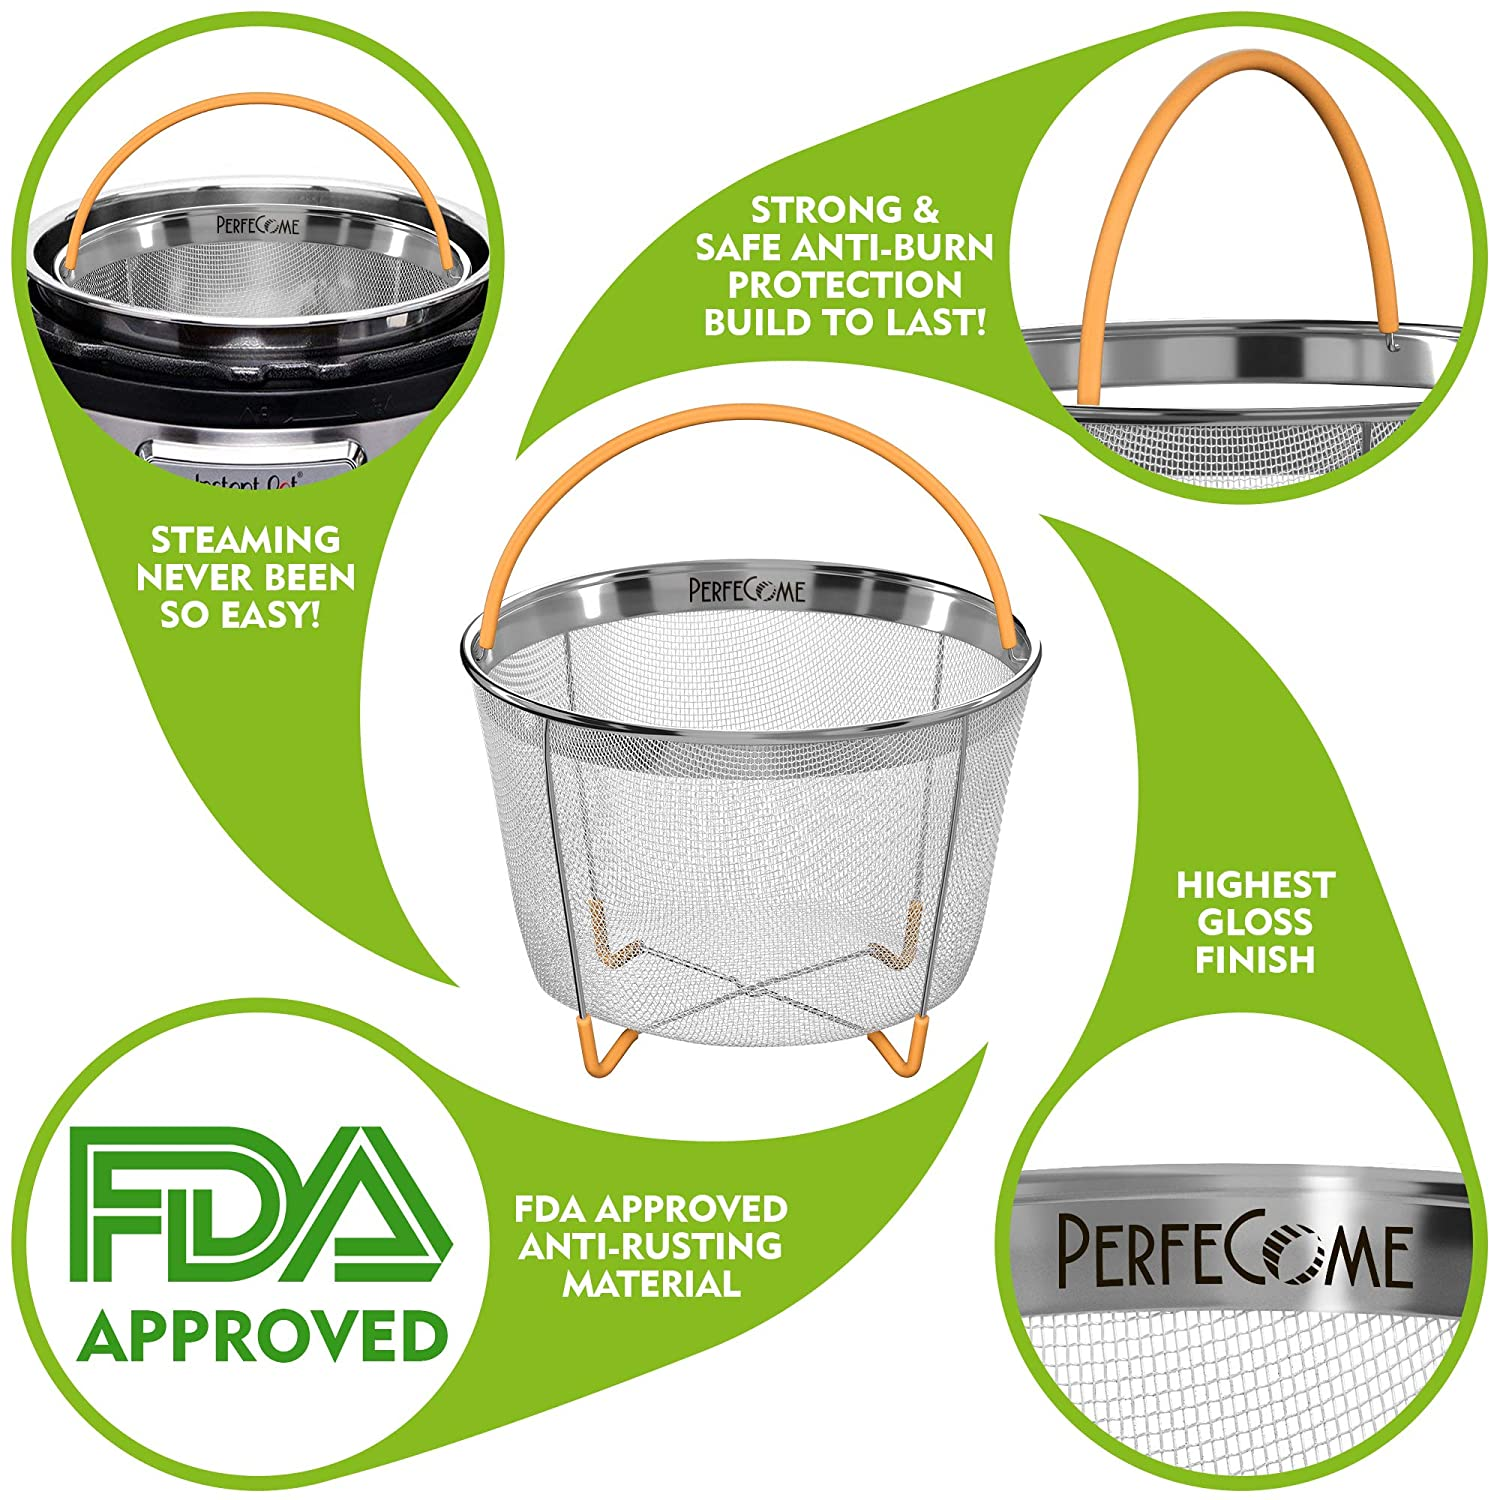 Veggie and Egg Mesh Basket Set with Silicone Handle and Non-Slip Legs Vegetable Steamer Basket for 6 and 8 qt Instant Pot Accessories Stainless Steel Strainer Fits InstaPot Pressure Cooker